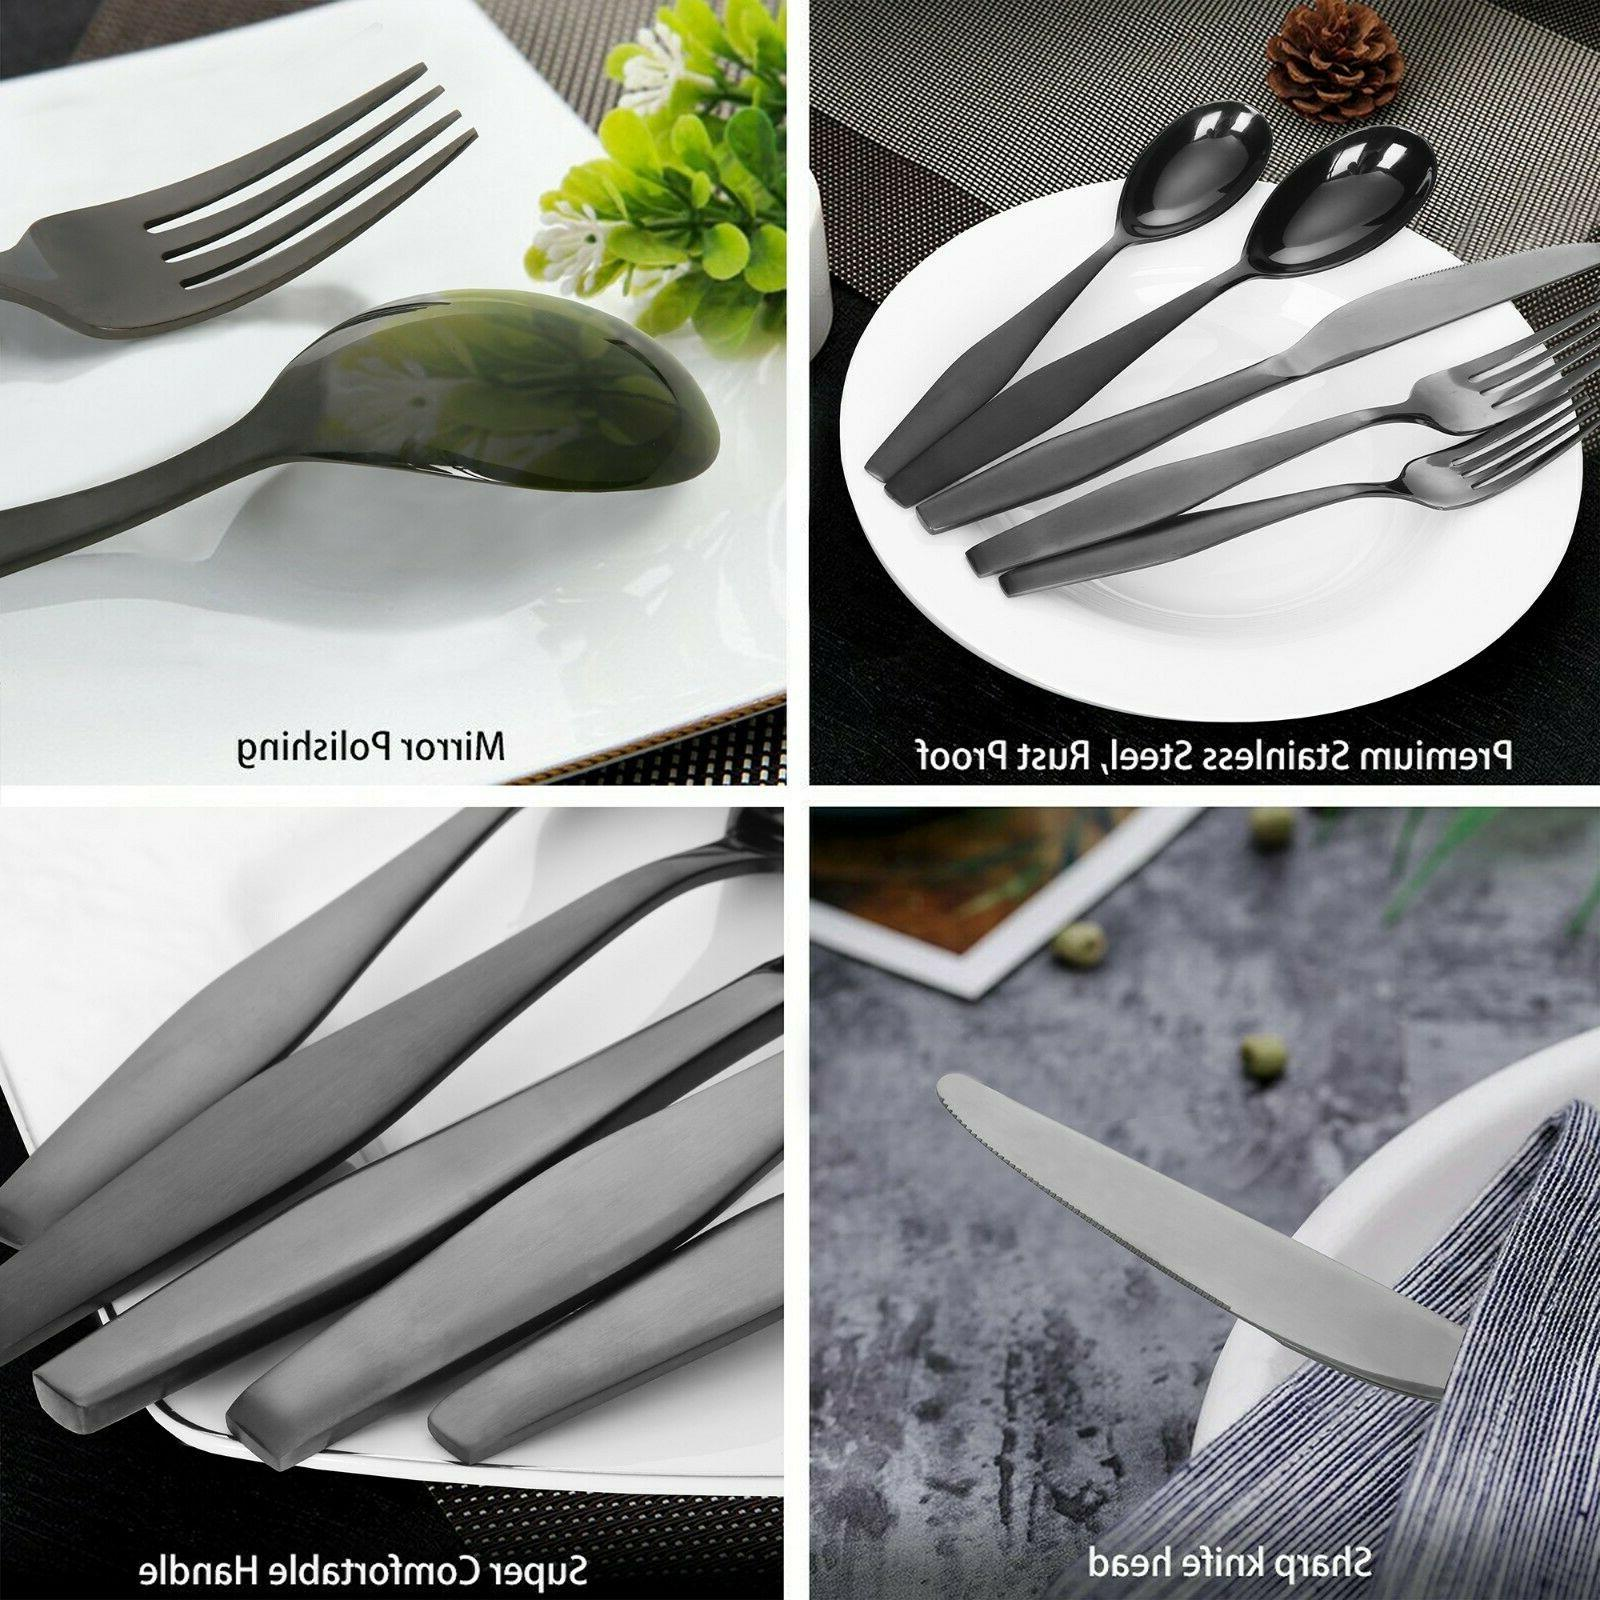 NEW Lorena Flatware 20 Silverware Set - 20pc for 4